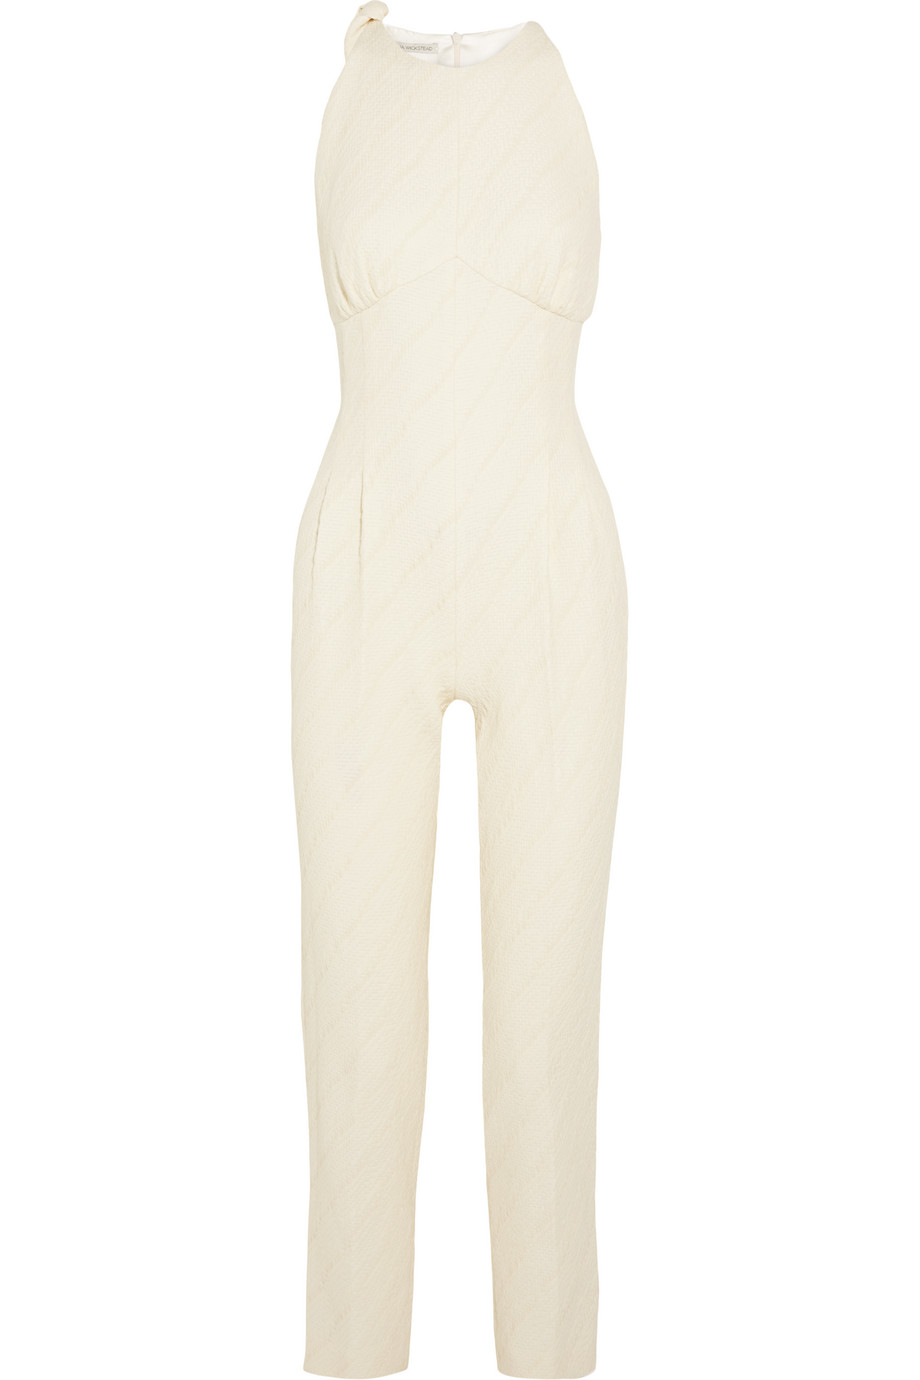 Havanna Matelassé Jumpsuit, Emilia Wickstead, Cream, Women's, Size: 6